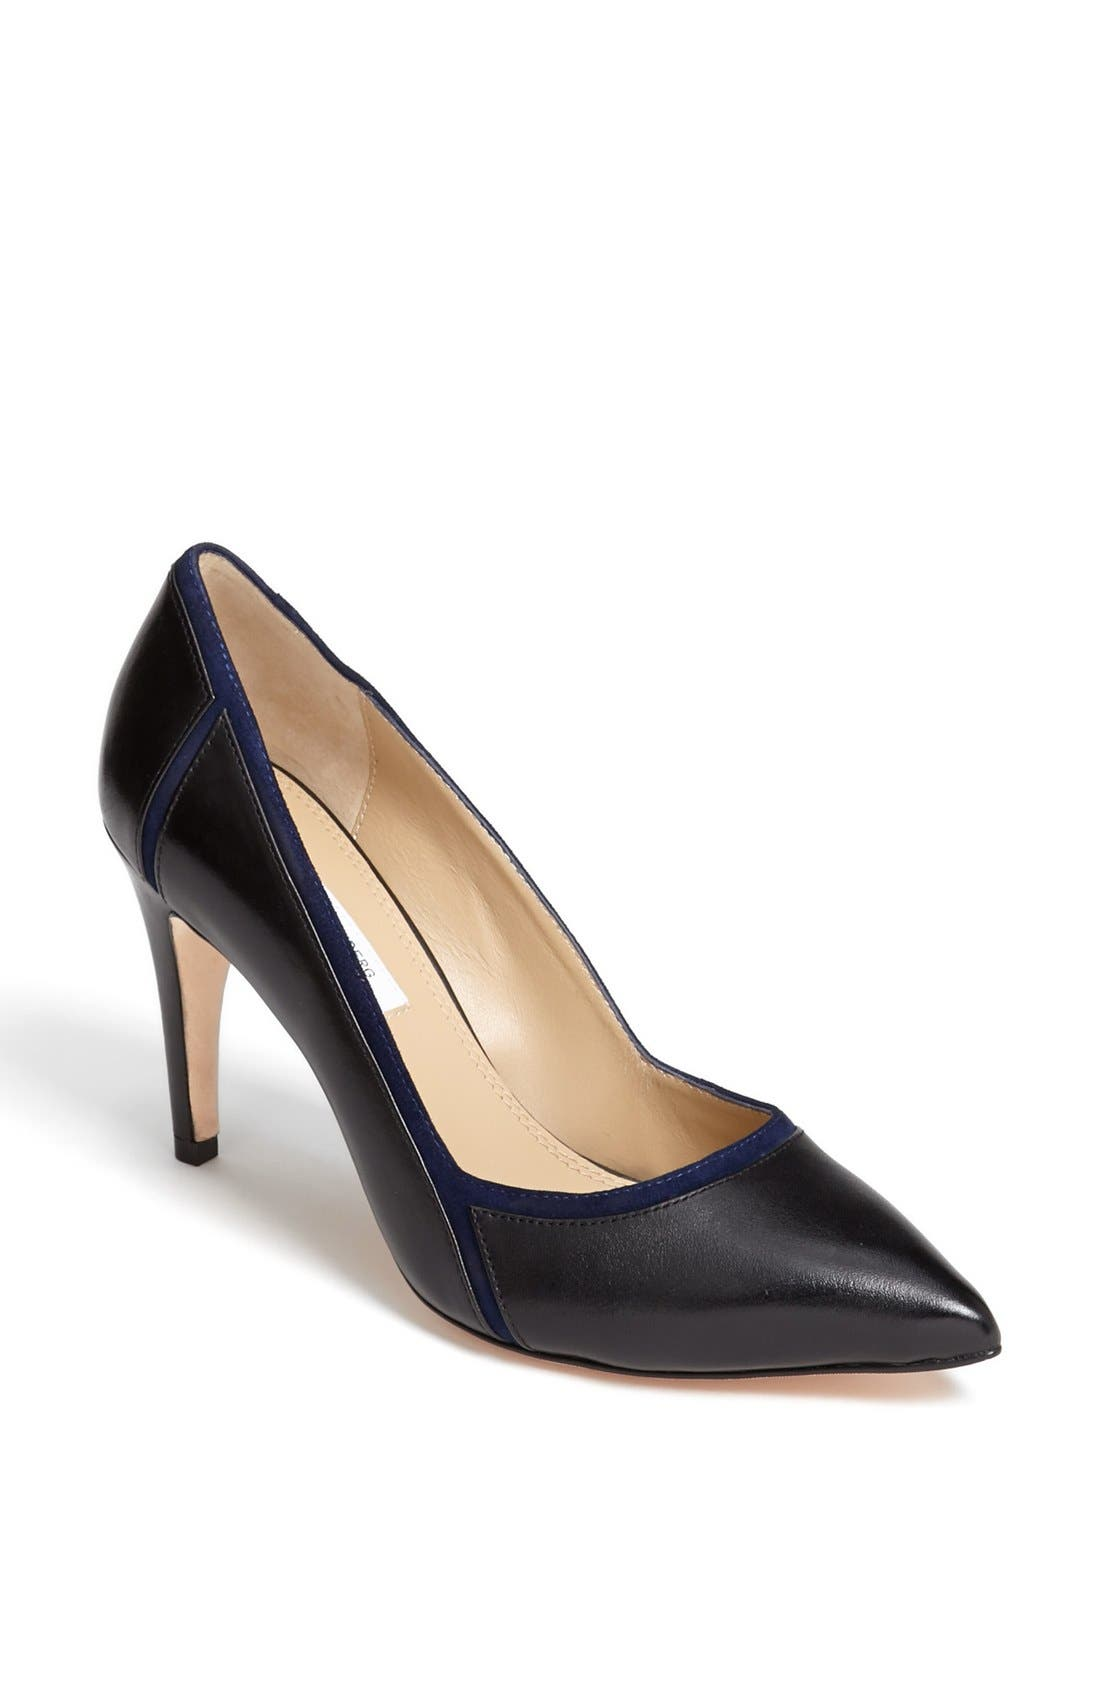 Alternate Image 1 Selected - Diane von Furstenberg 'Aki' Pump